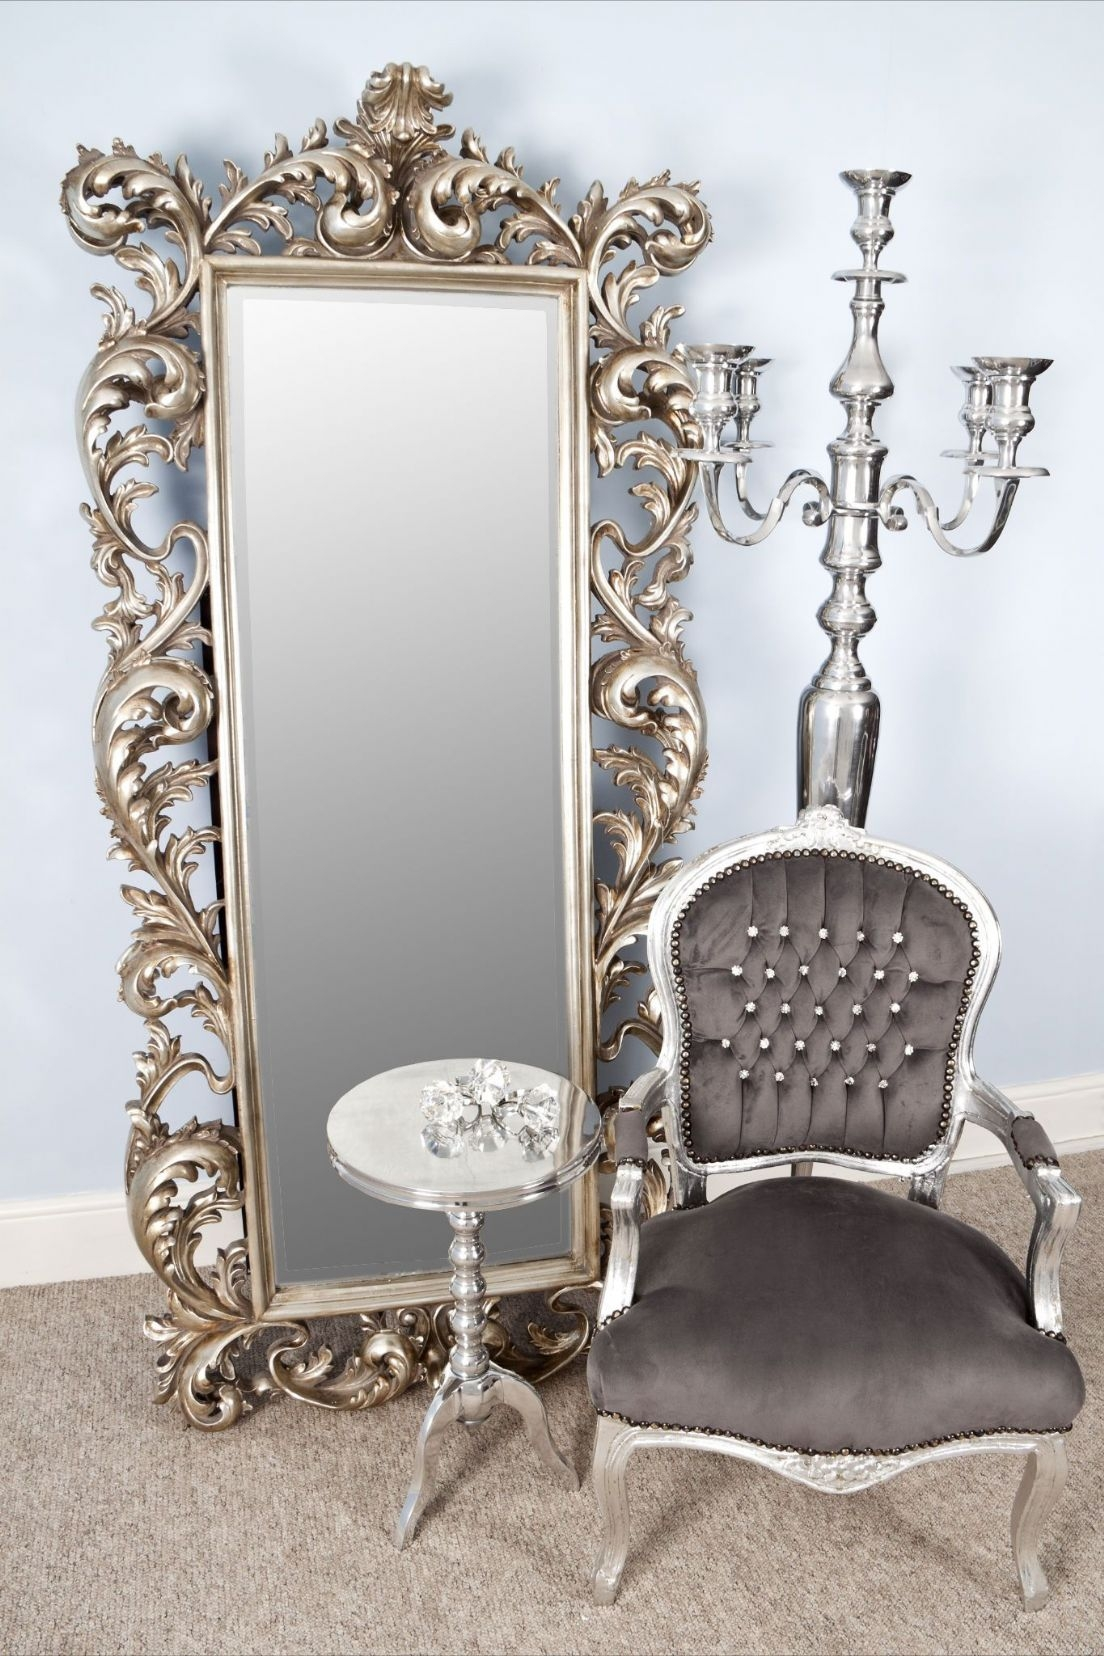 Bedroom Furniture Window Frame Mirror Antique Wall Mirrors Wall Regarding Large Mirrors Online (Image 3 of 15)